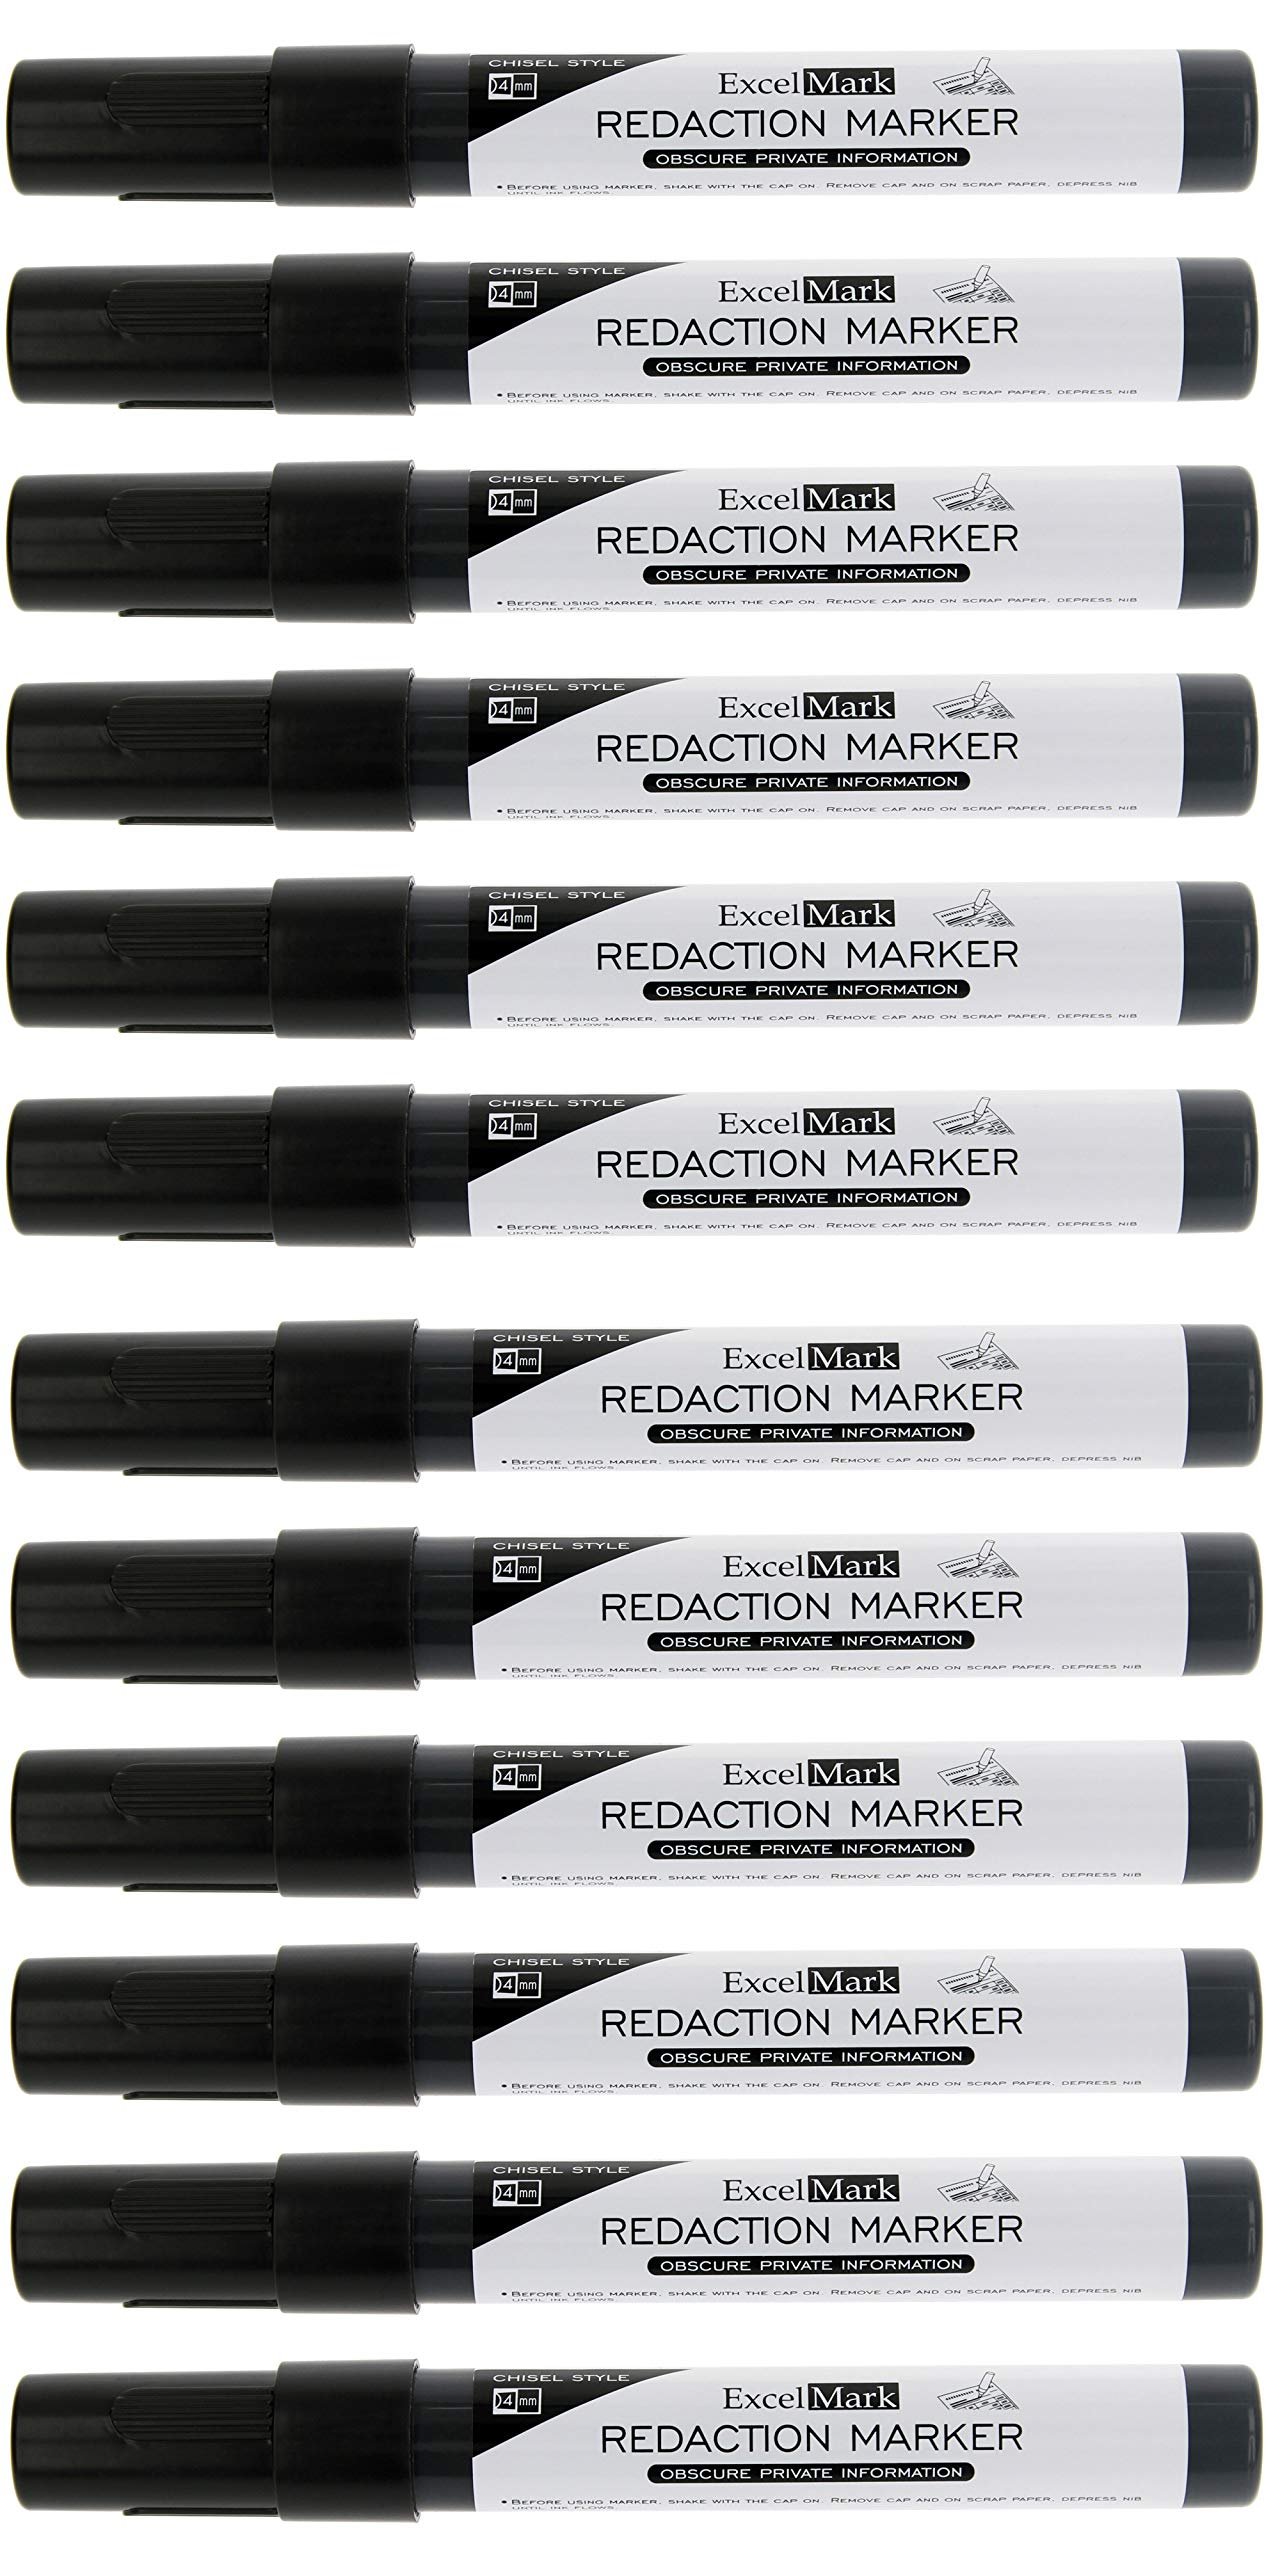 ExcelMark Security Redaction Marker - Blackout Private Information With Our Convenient Redacting Pen (12 Markers)